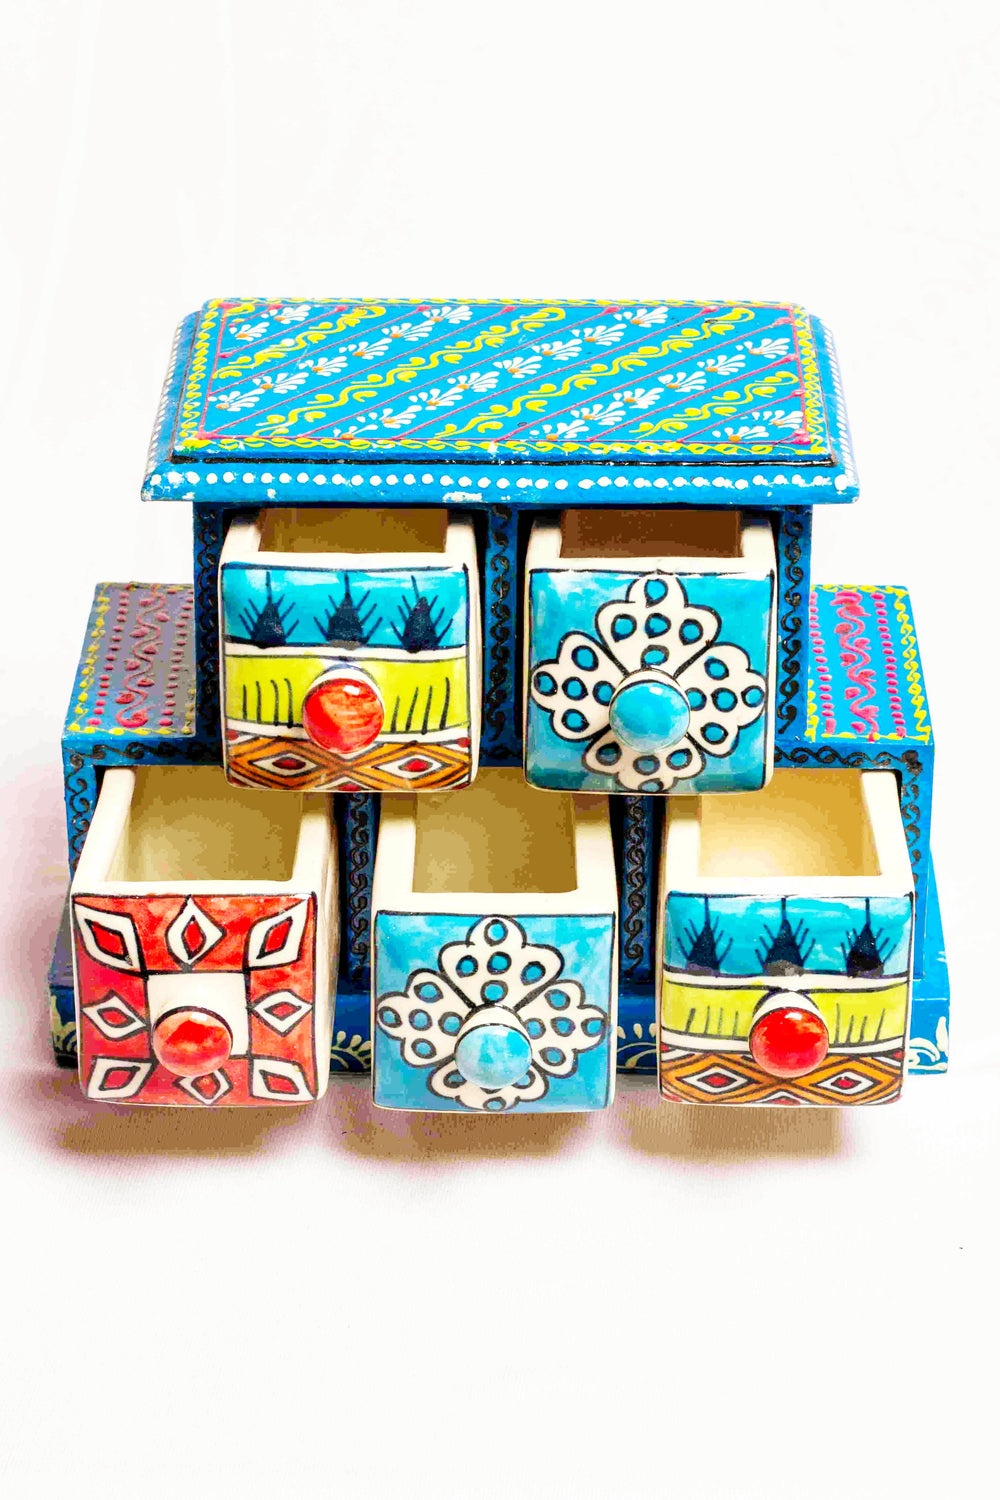 Chest of drawers in a blue framed wooden box with painted motifs, with 5 ceramic drawers